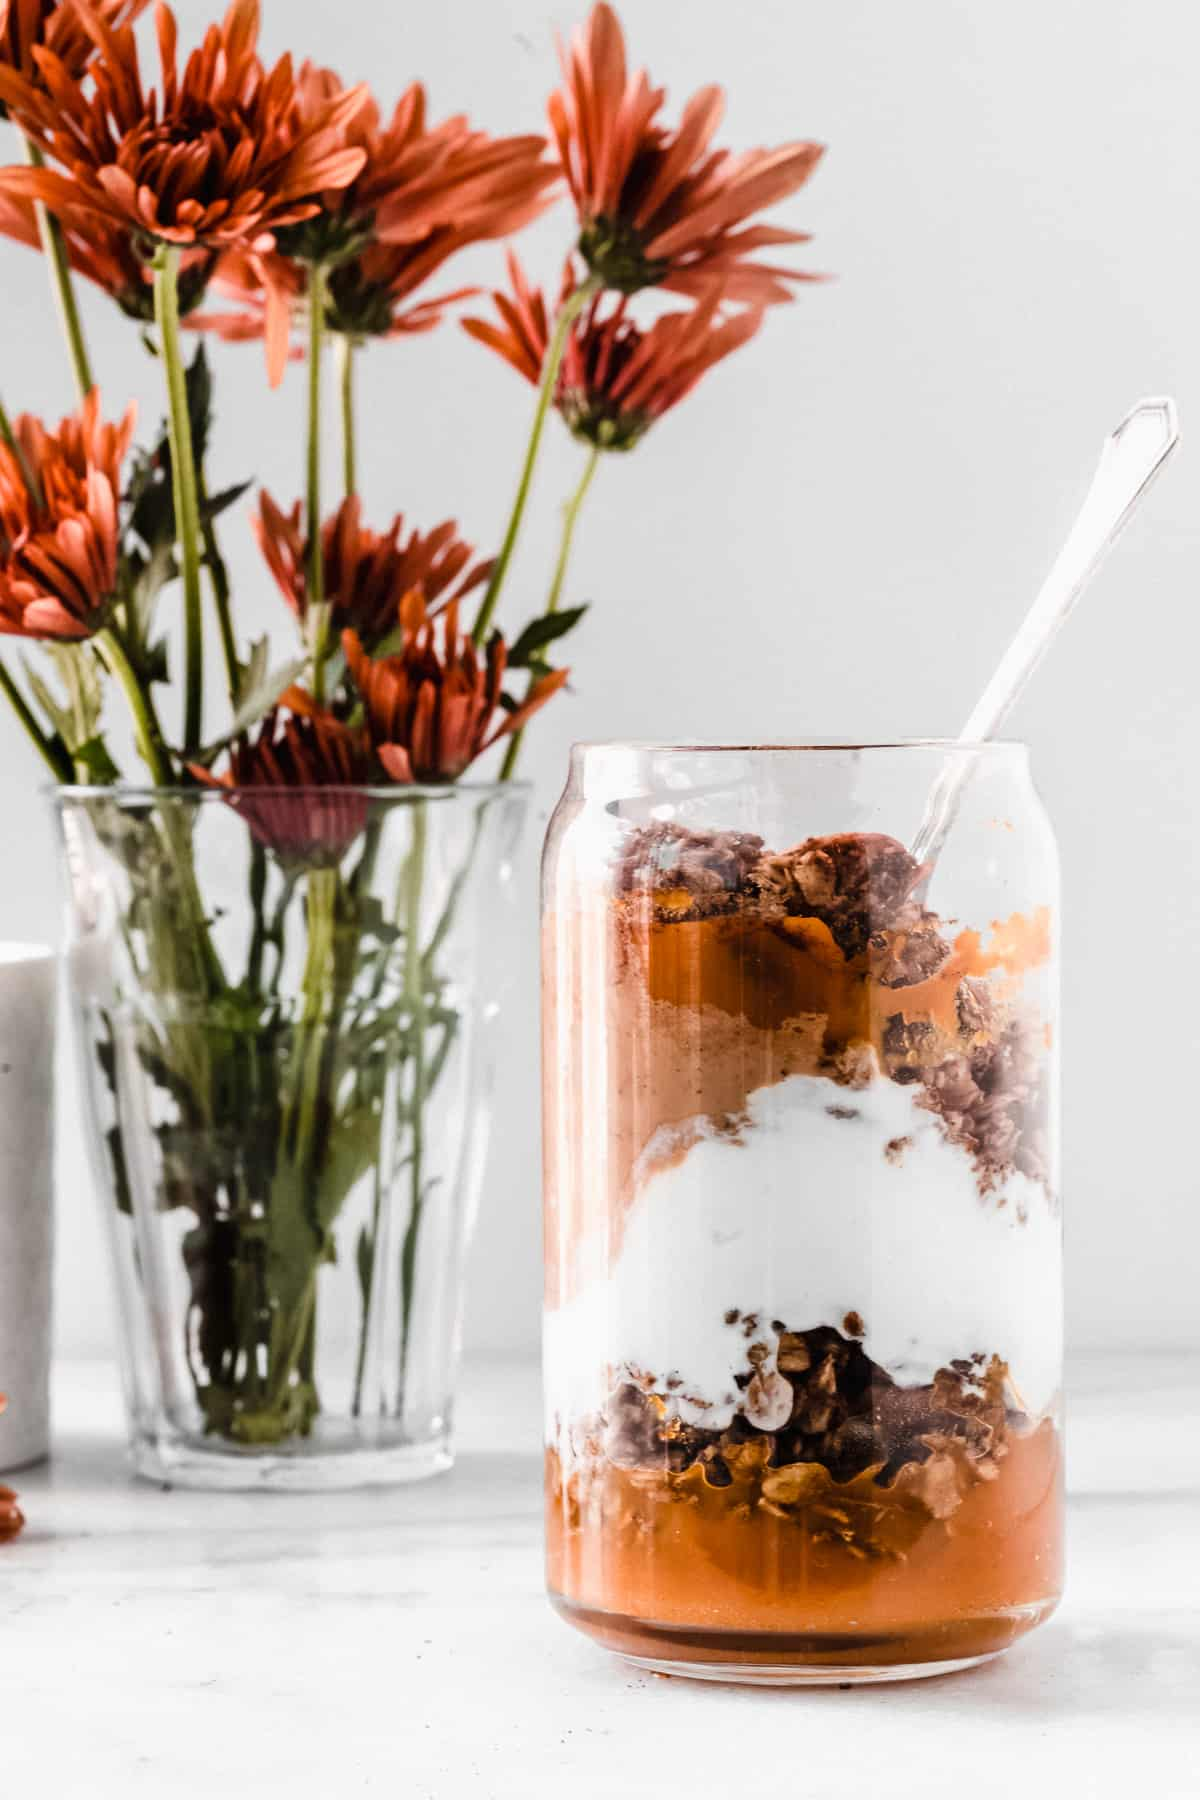 Clear glass sitting on marble surface with pumpkin yogurt parfait and orange flowers in the background.